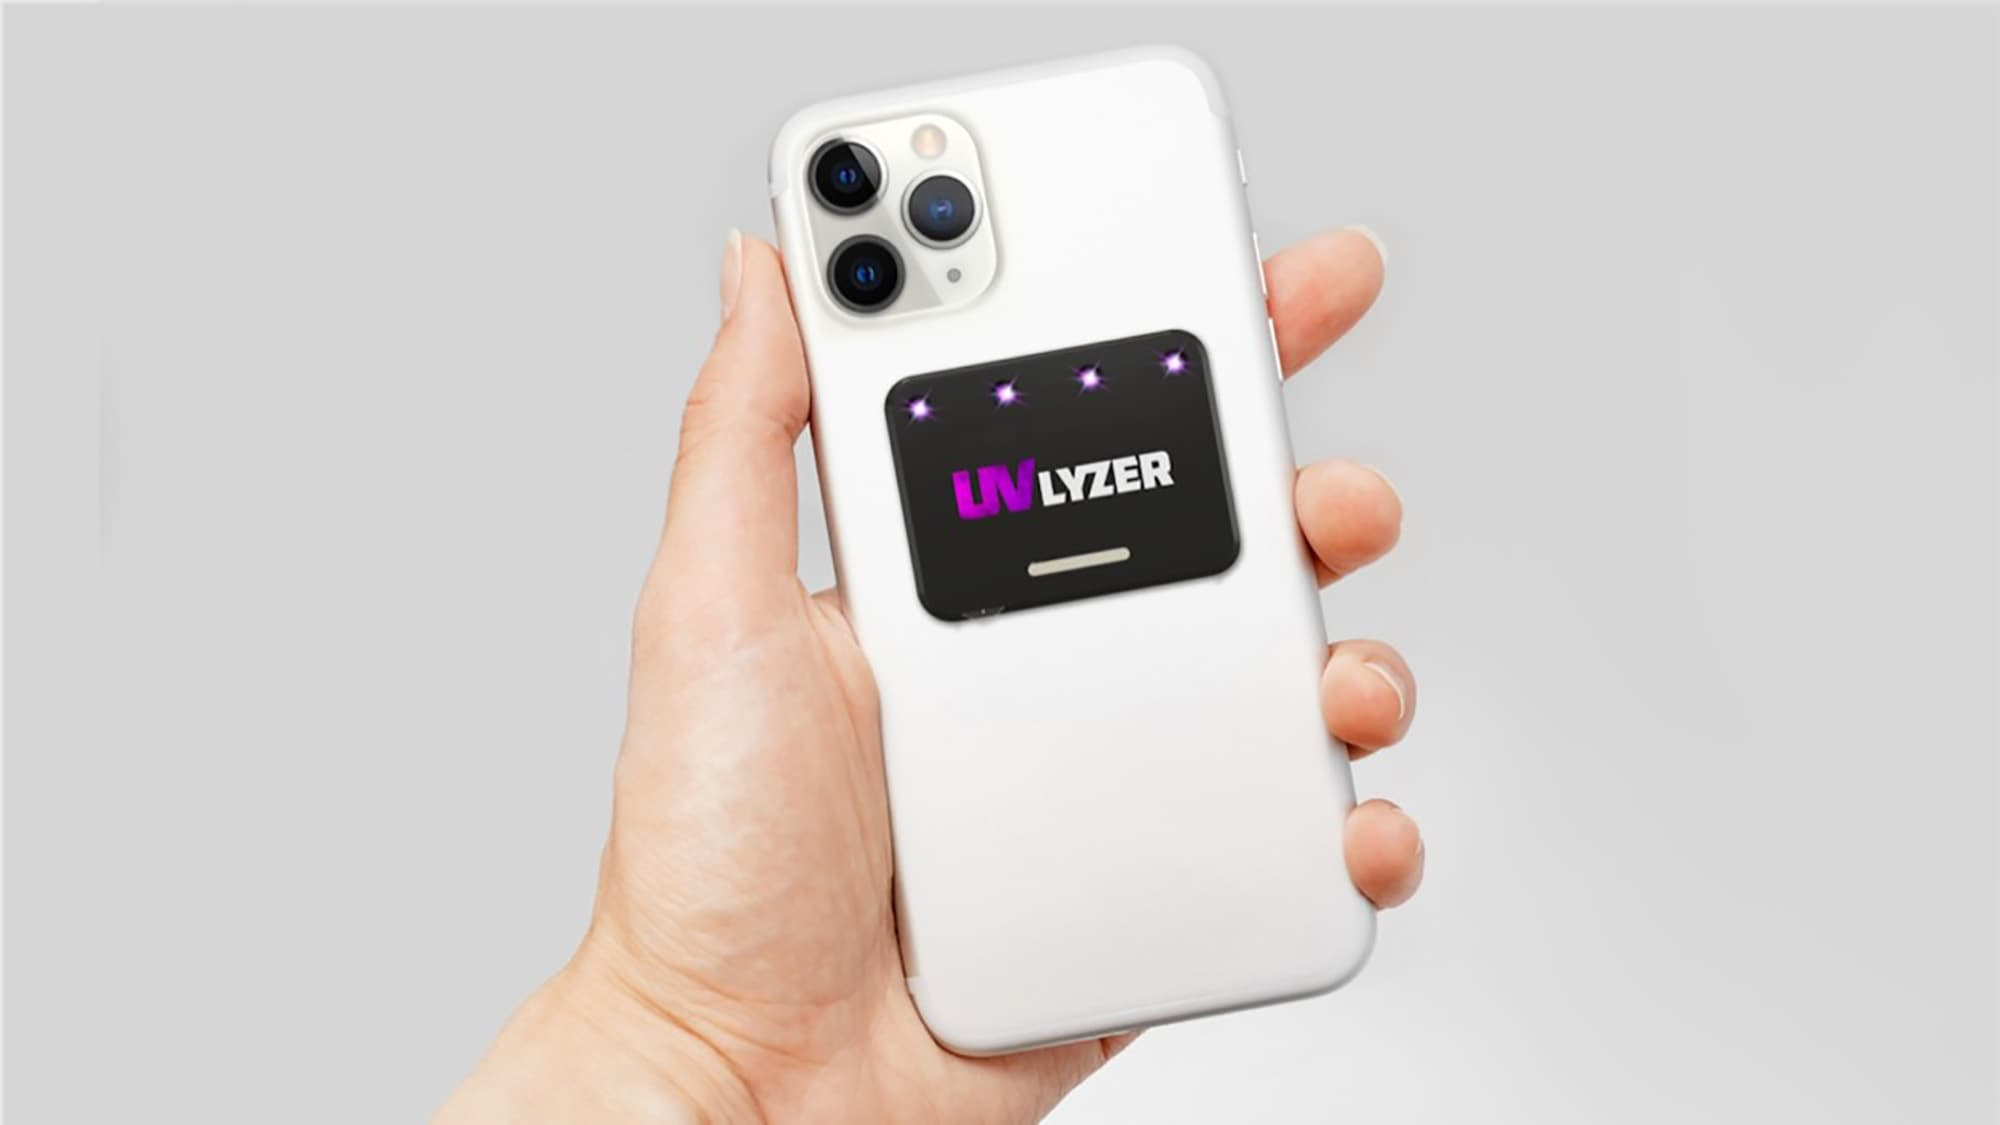 This sanitizer sticker kills nasty germs on your smartphone immediately